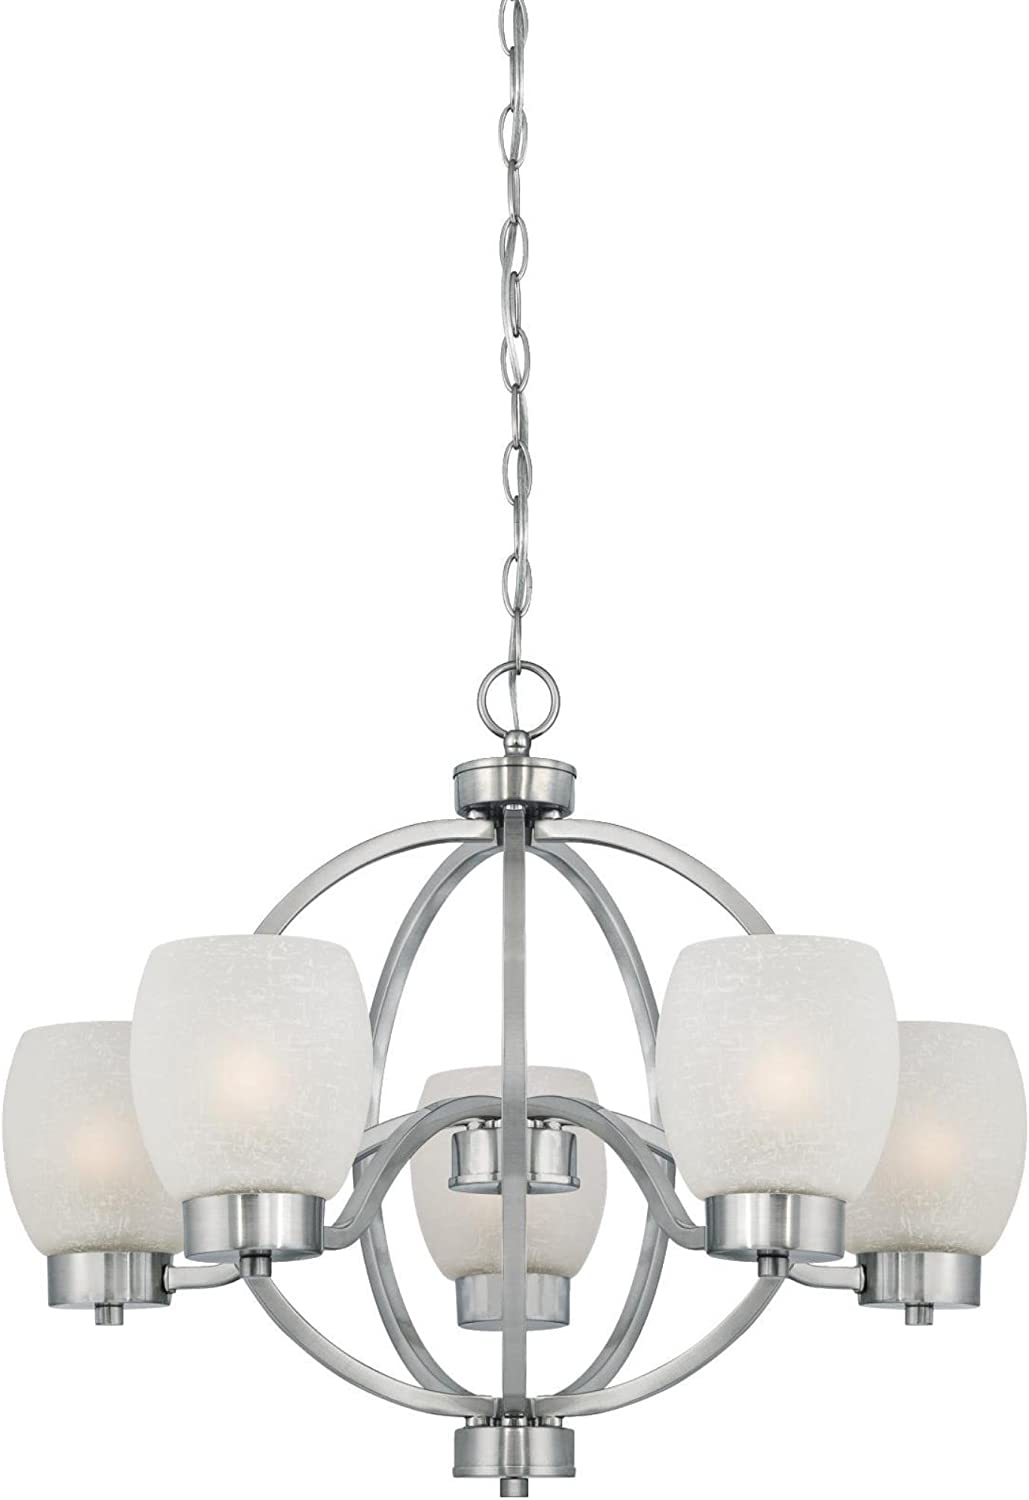 Westinghouse Lighting 6341200 Karah Five-Light Indoor Chandelier, Brushed Nickel Finish with White Linen Glass